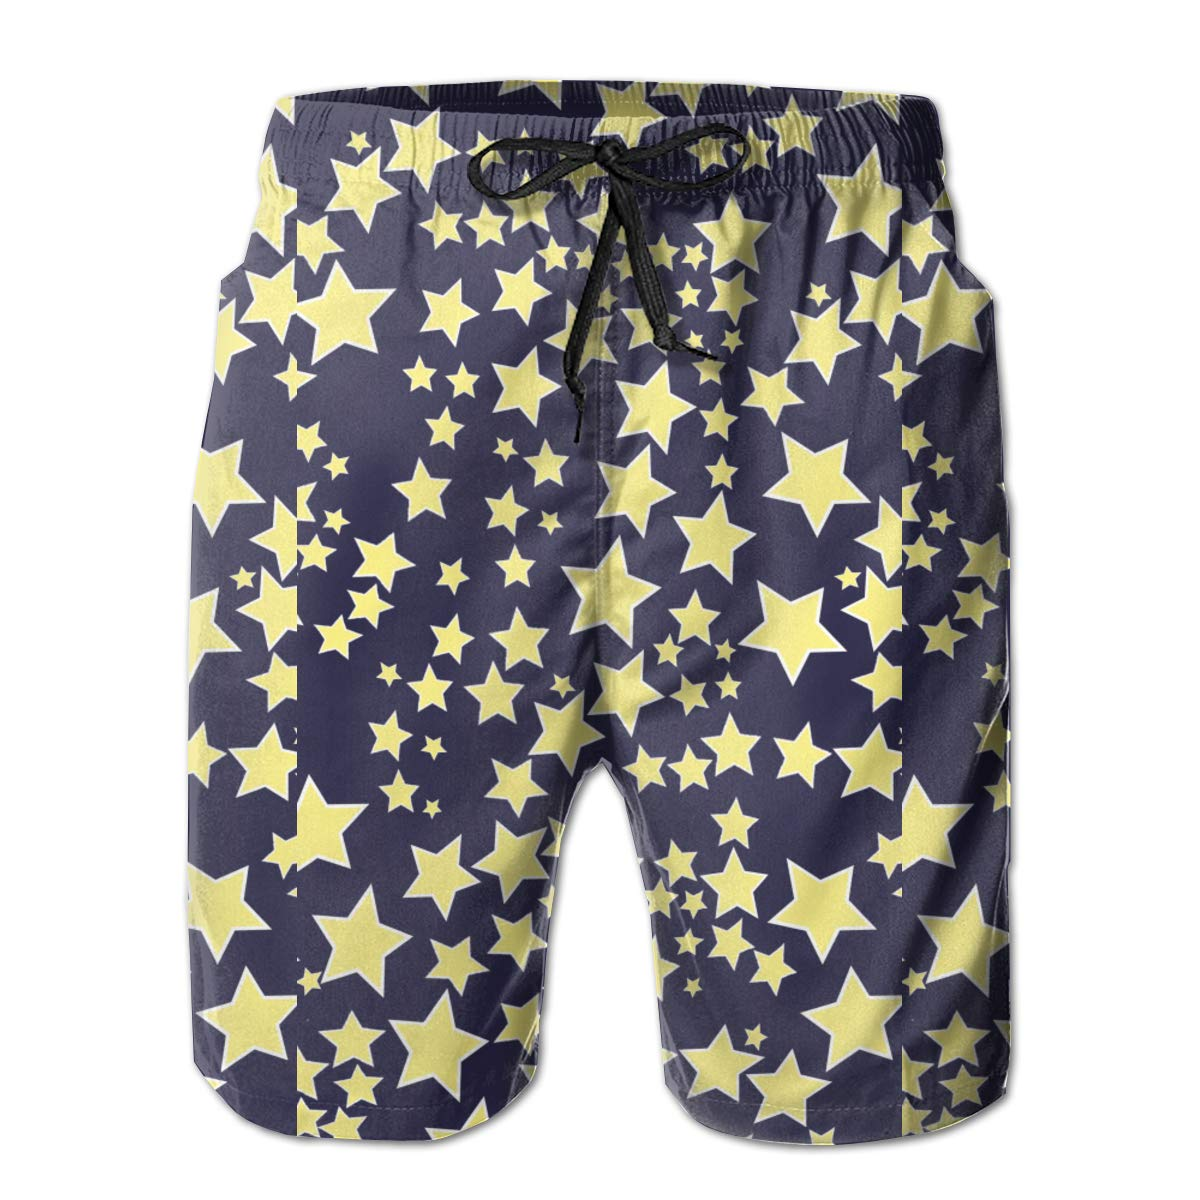 Starry Sky Stars Design Mens Summer Beachwear Sports Running Swim Board Shorts Mesh Lining